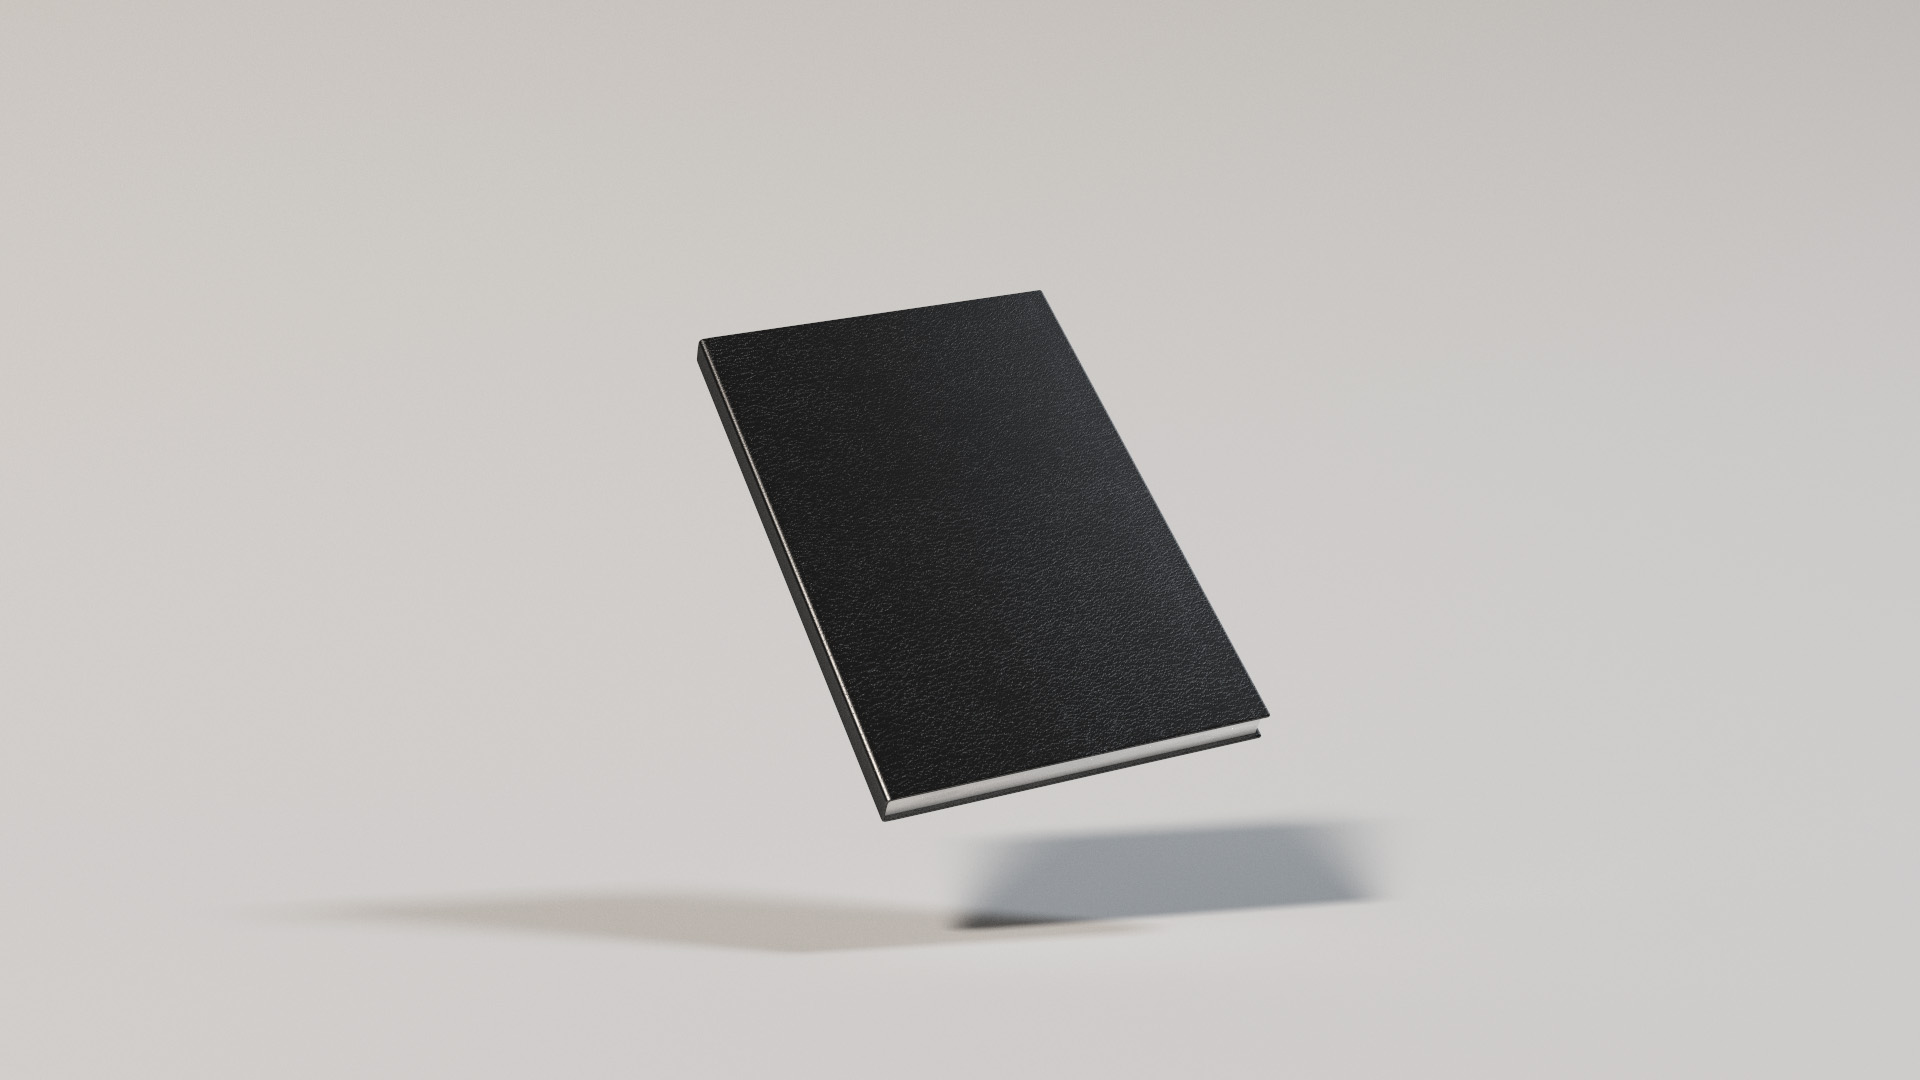 Notebook with a leathery surface. All surface detail comes from bump mapping. Rendered using BDPT.